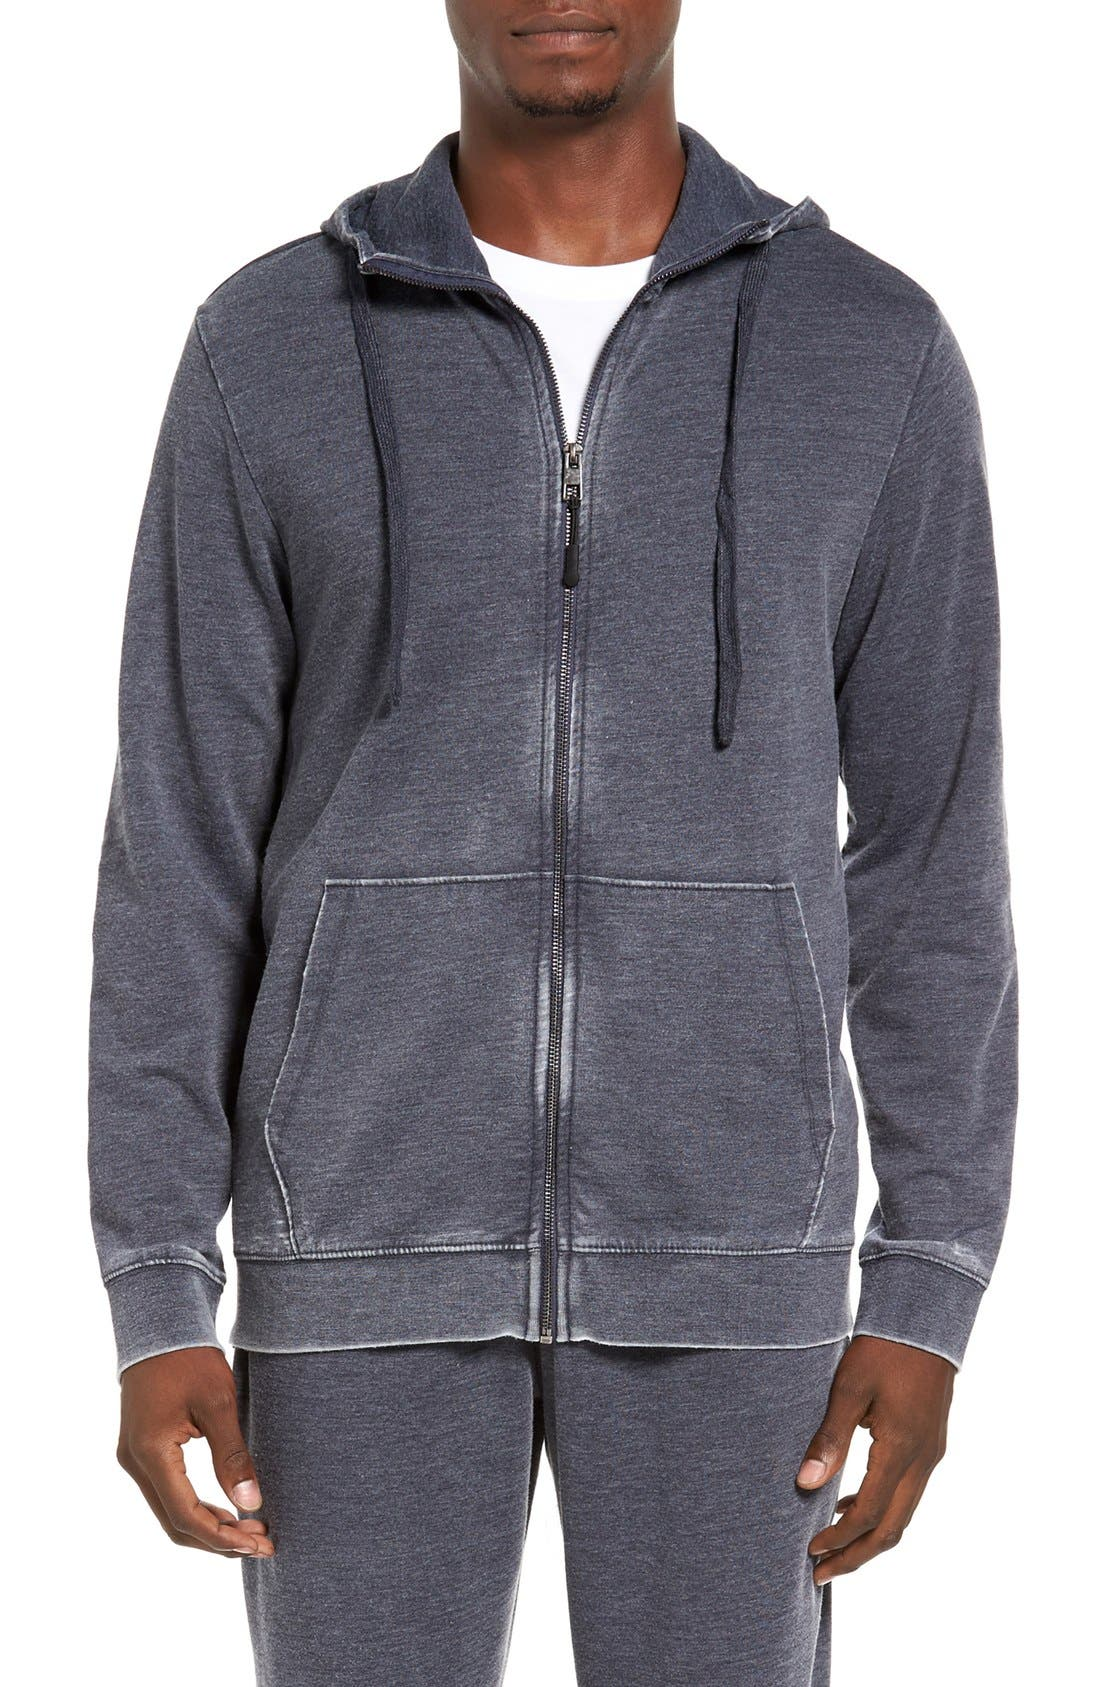 DANIEL BUCHLER Washed Cotton Blend Terry Zip Hoodie